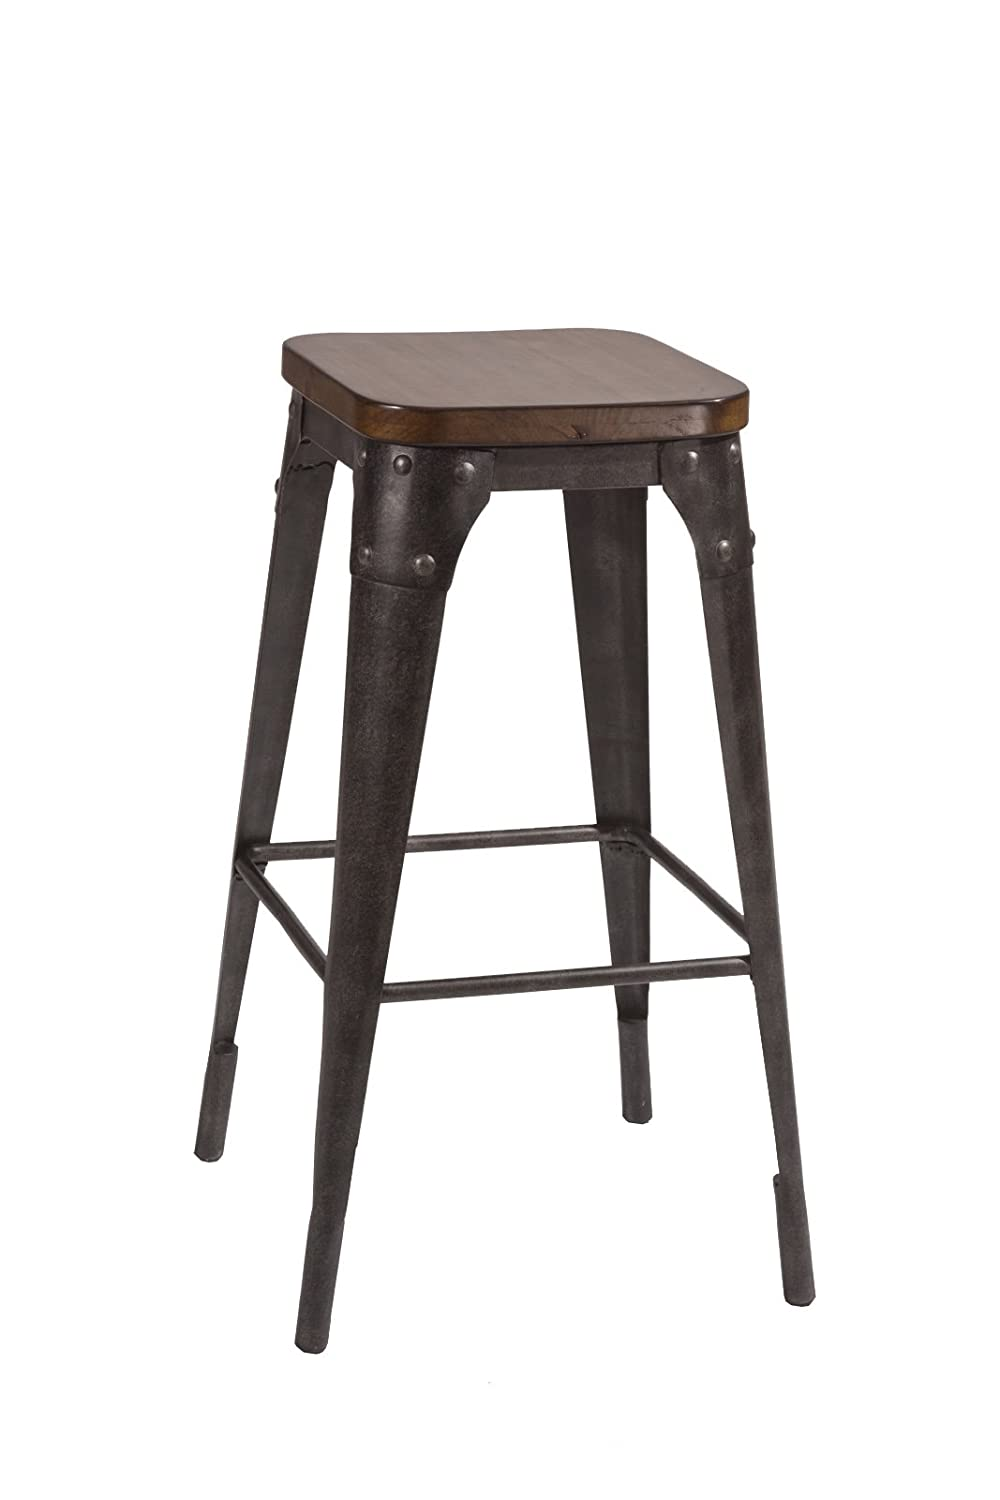 Hillsdale Furniture Morris Non-Swivel Bar Stool, Black Pecan finish